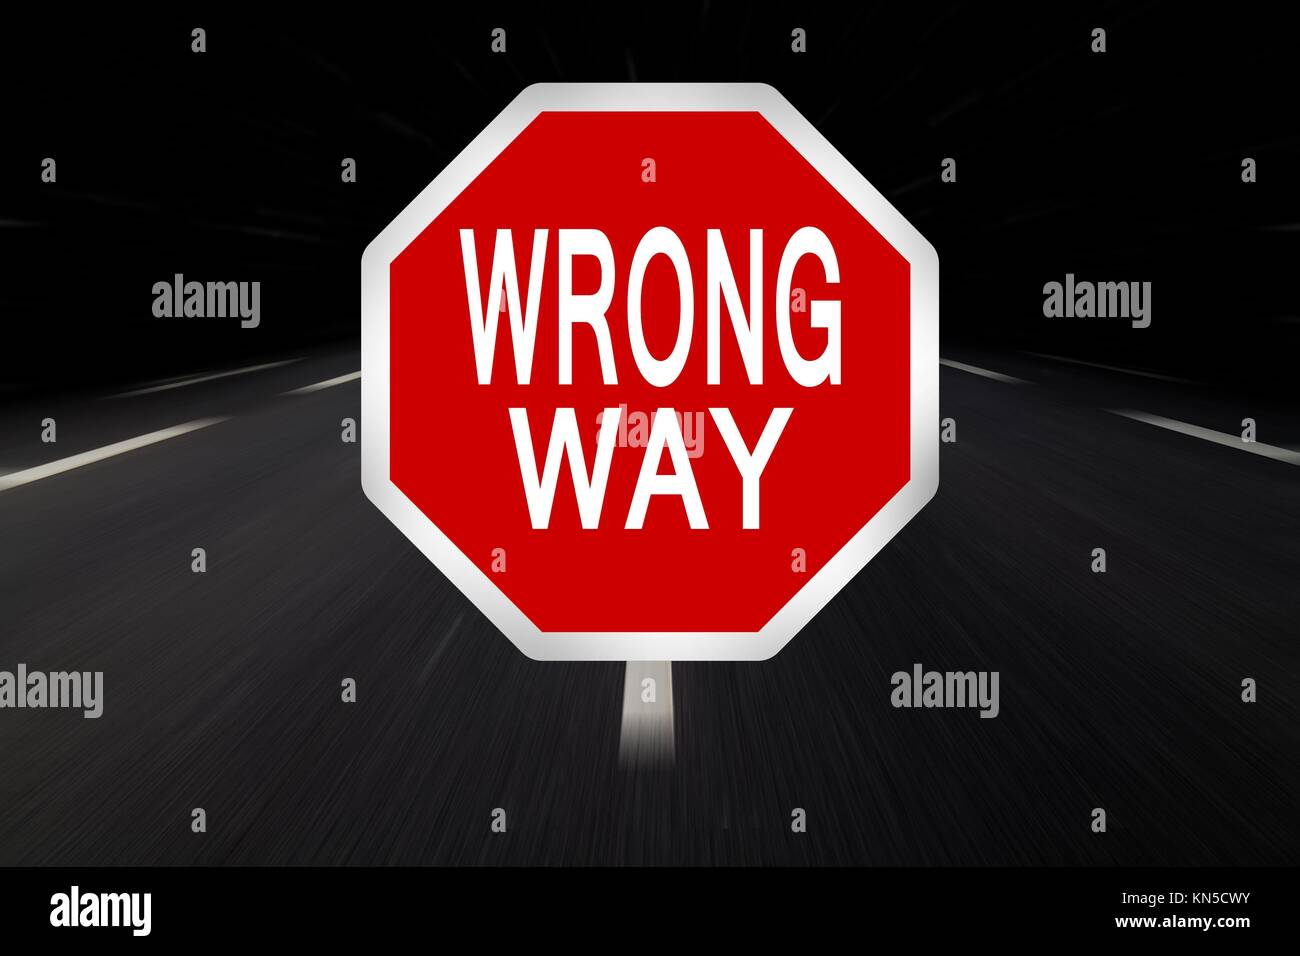 wrong way written on traffic sign. - Stock Image